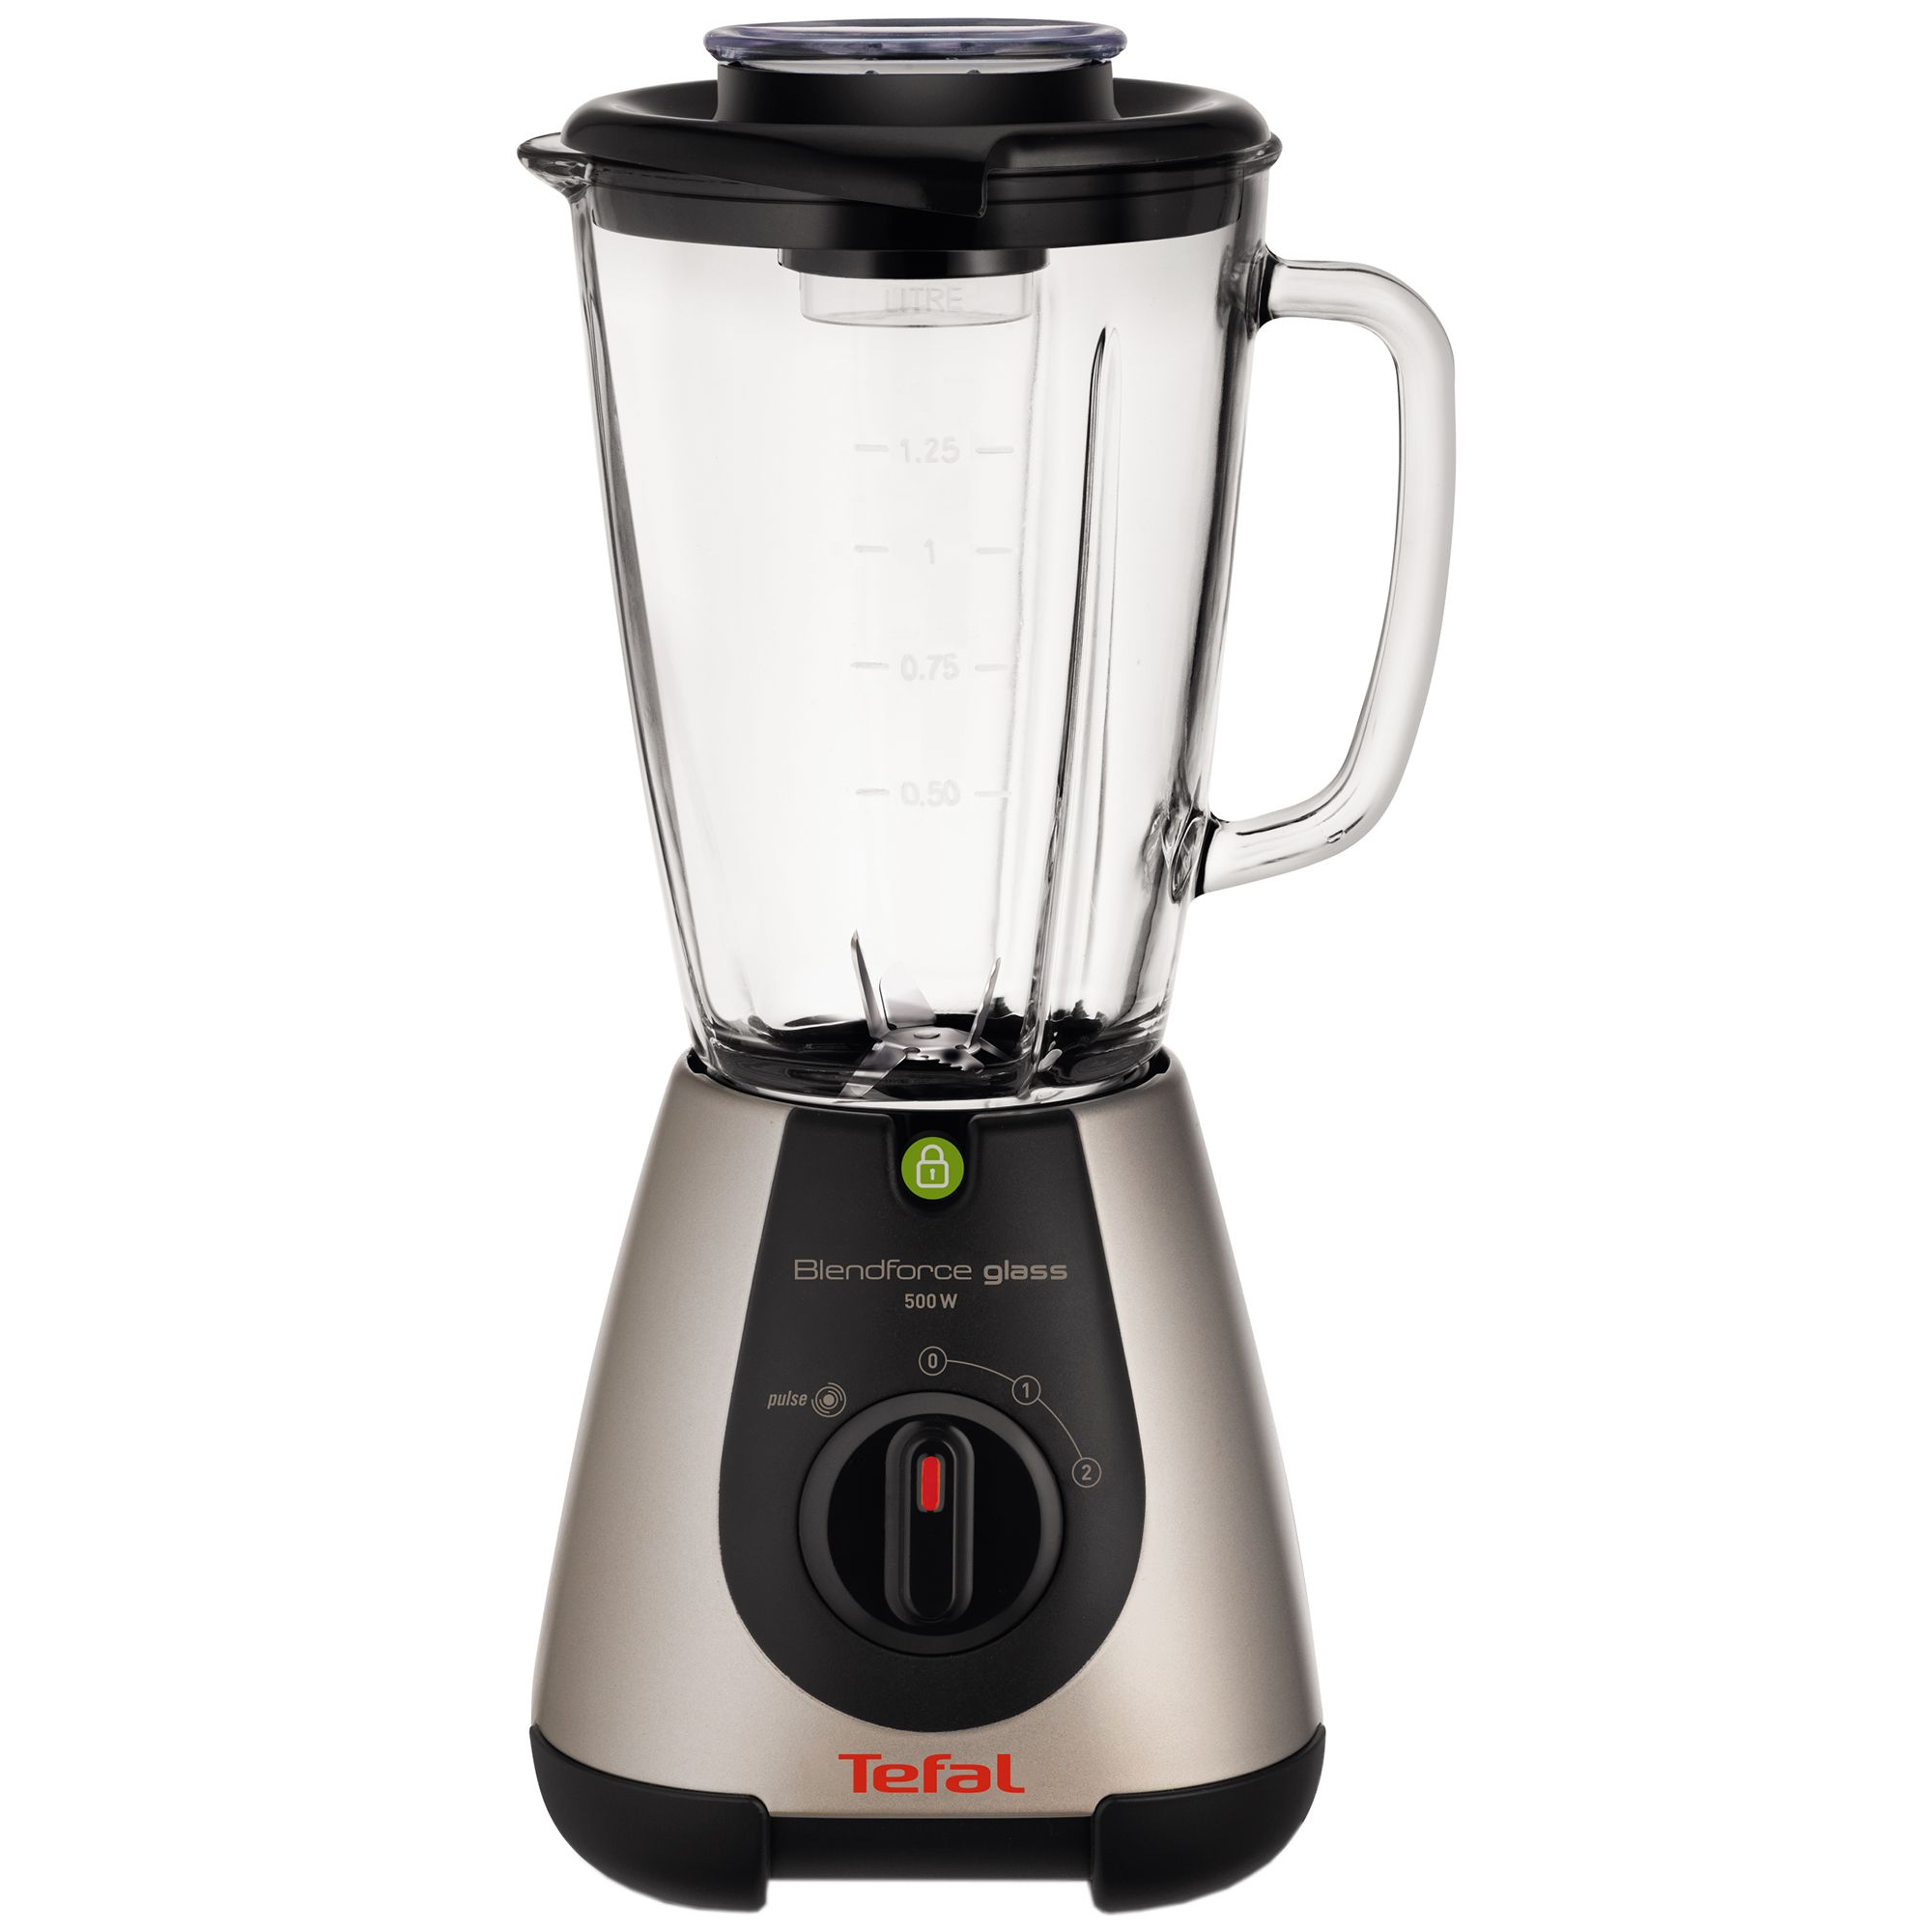 Блендер Tefal BlendForce Glass Tripl'Ax BL313A38, 500 W, 1.25 л, 2 скорости, Черен/Инокс